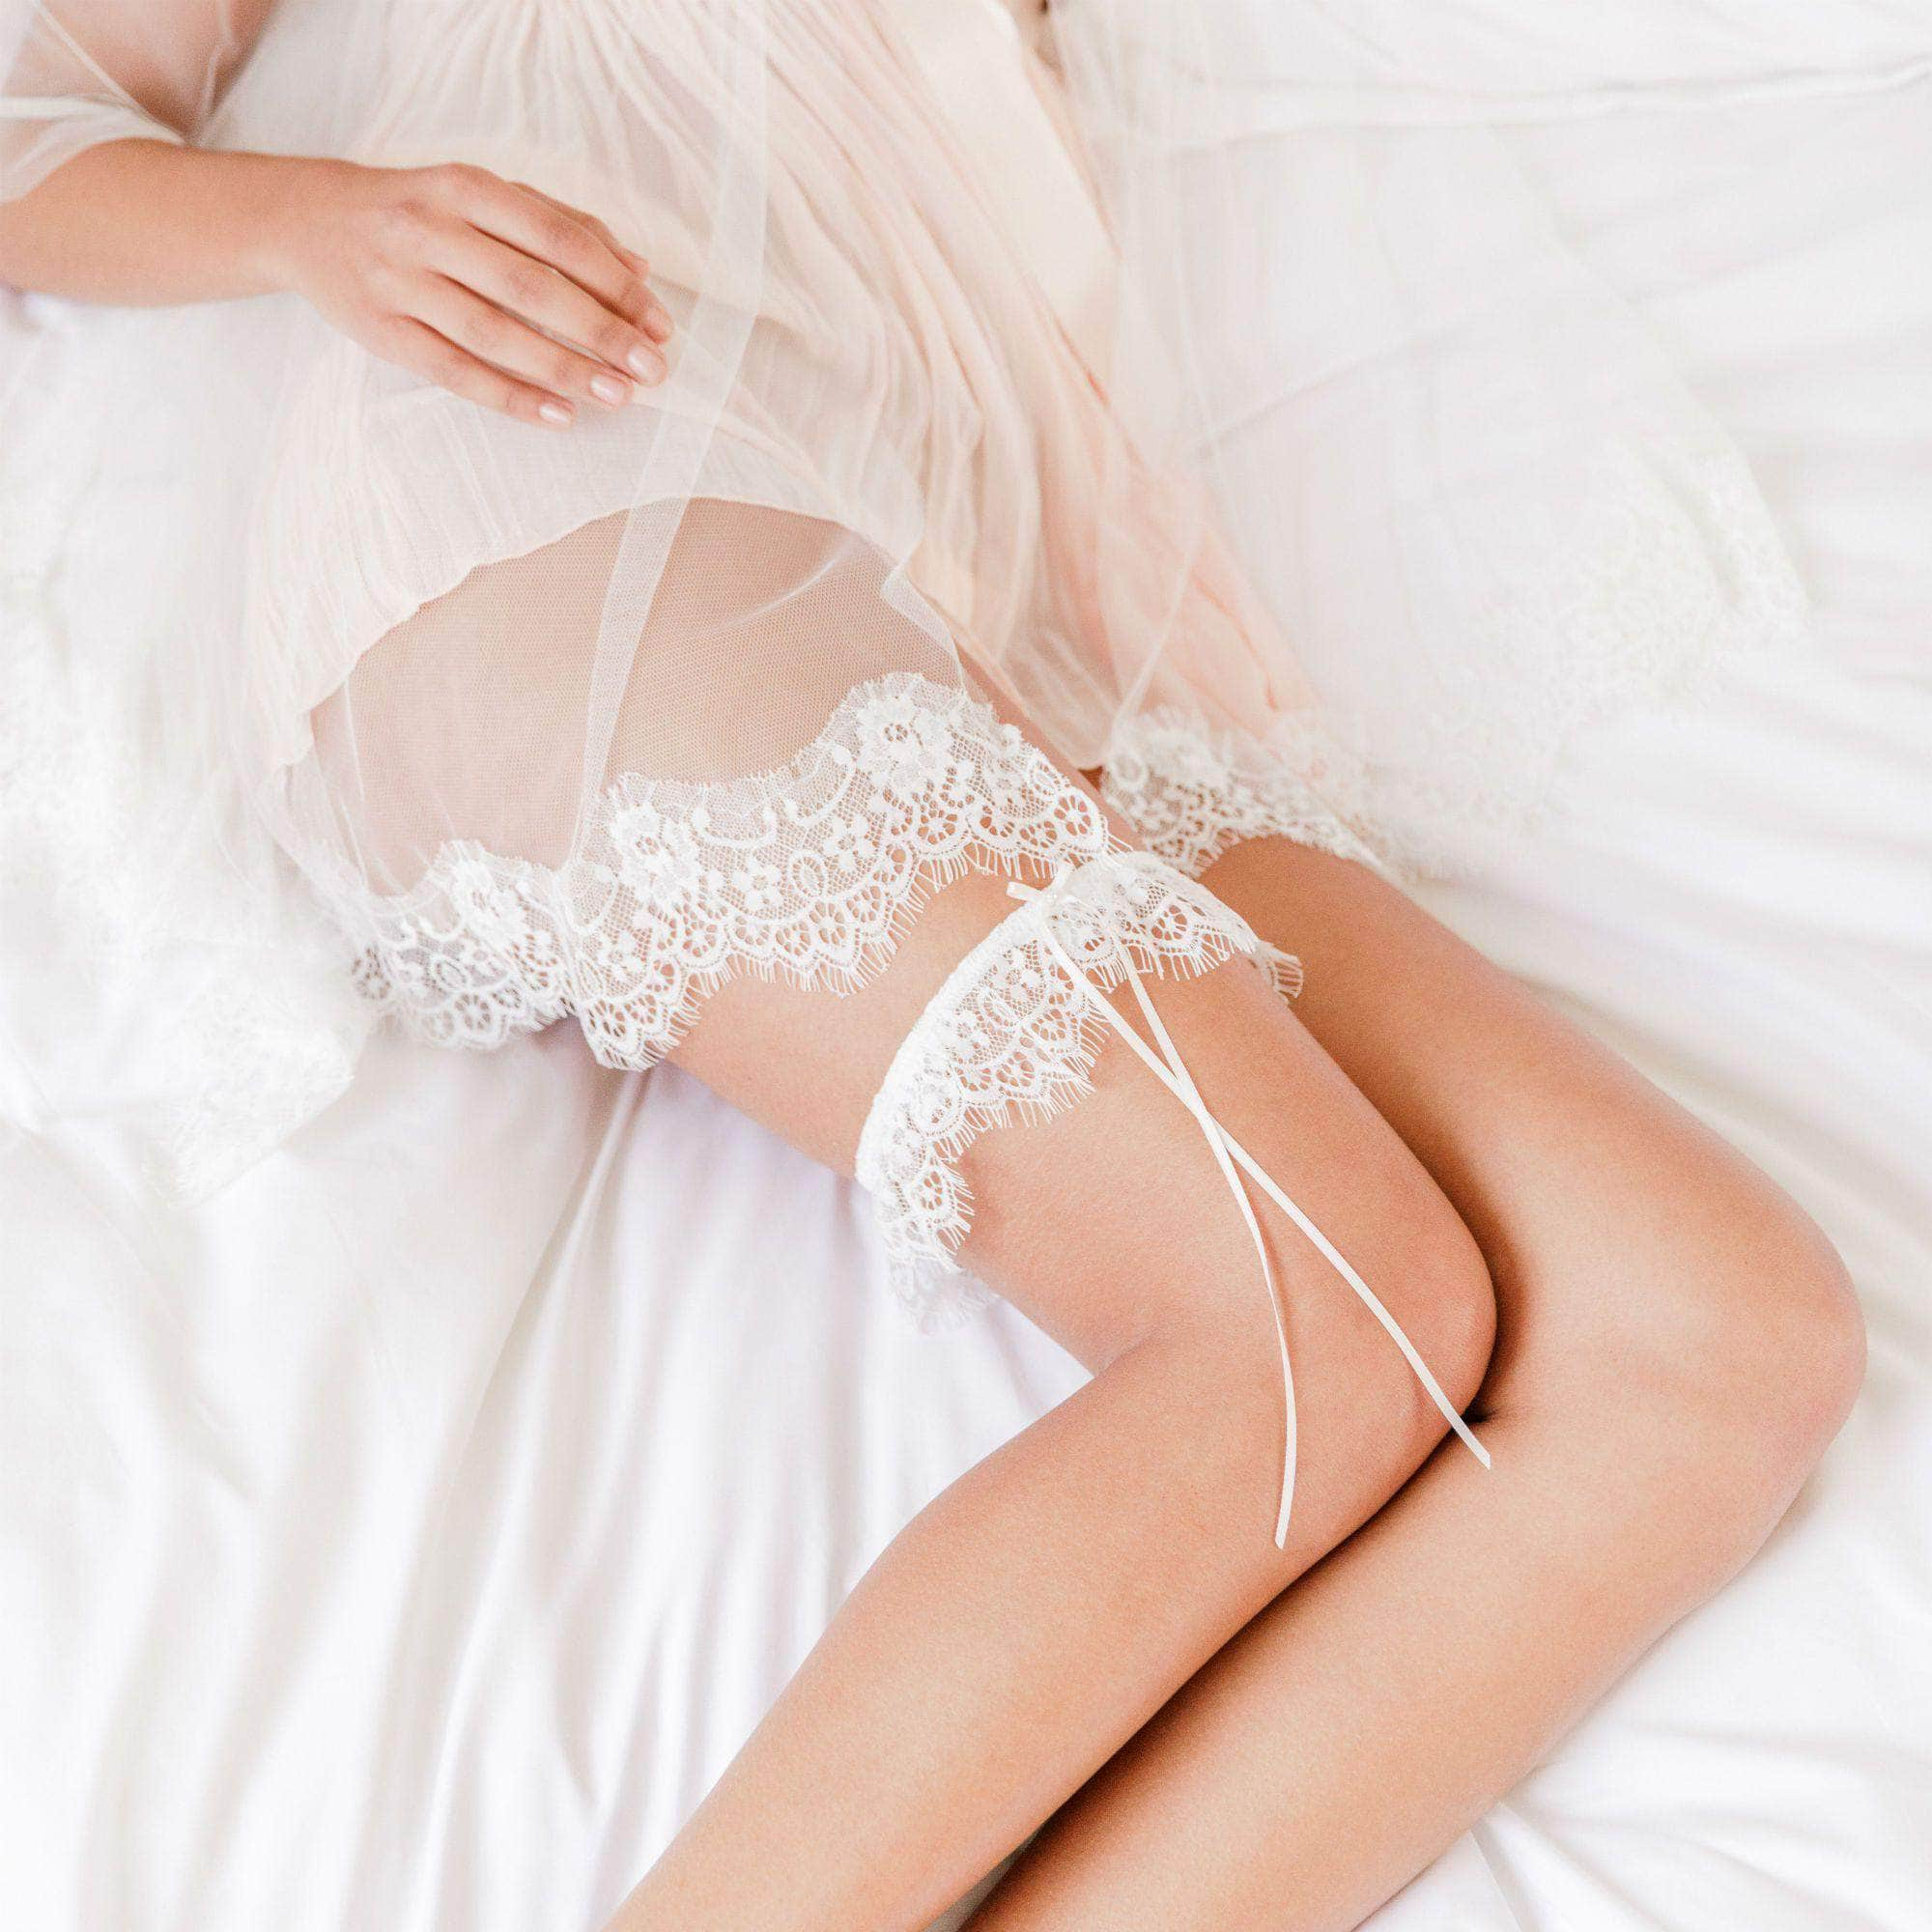 Wedding Garter Pale blue / Extra small 35-40cm (13.5-16 inch) Eyelash lace wedding garter with delicate satin bow- 'Kayla'